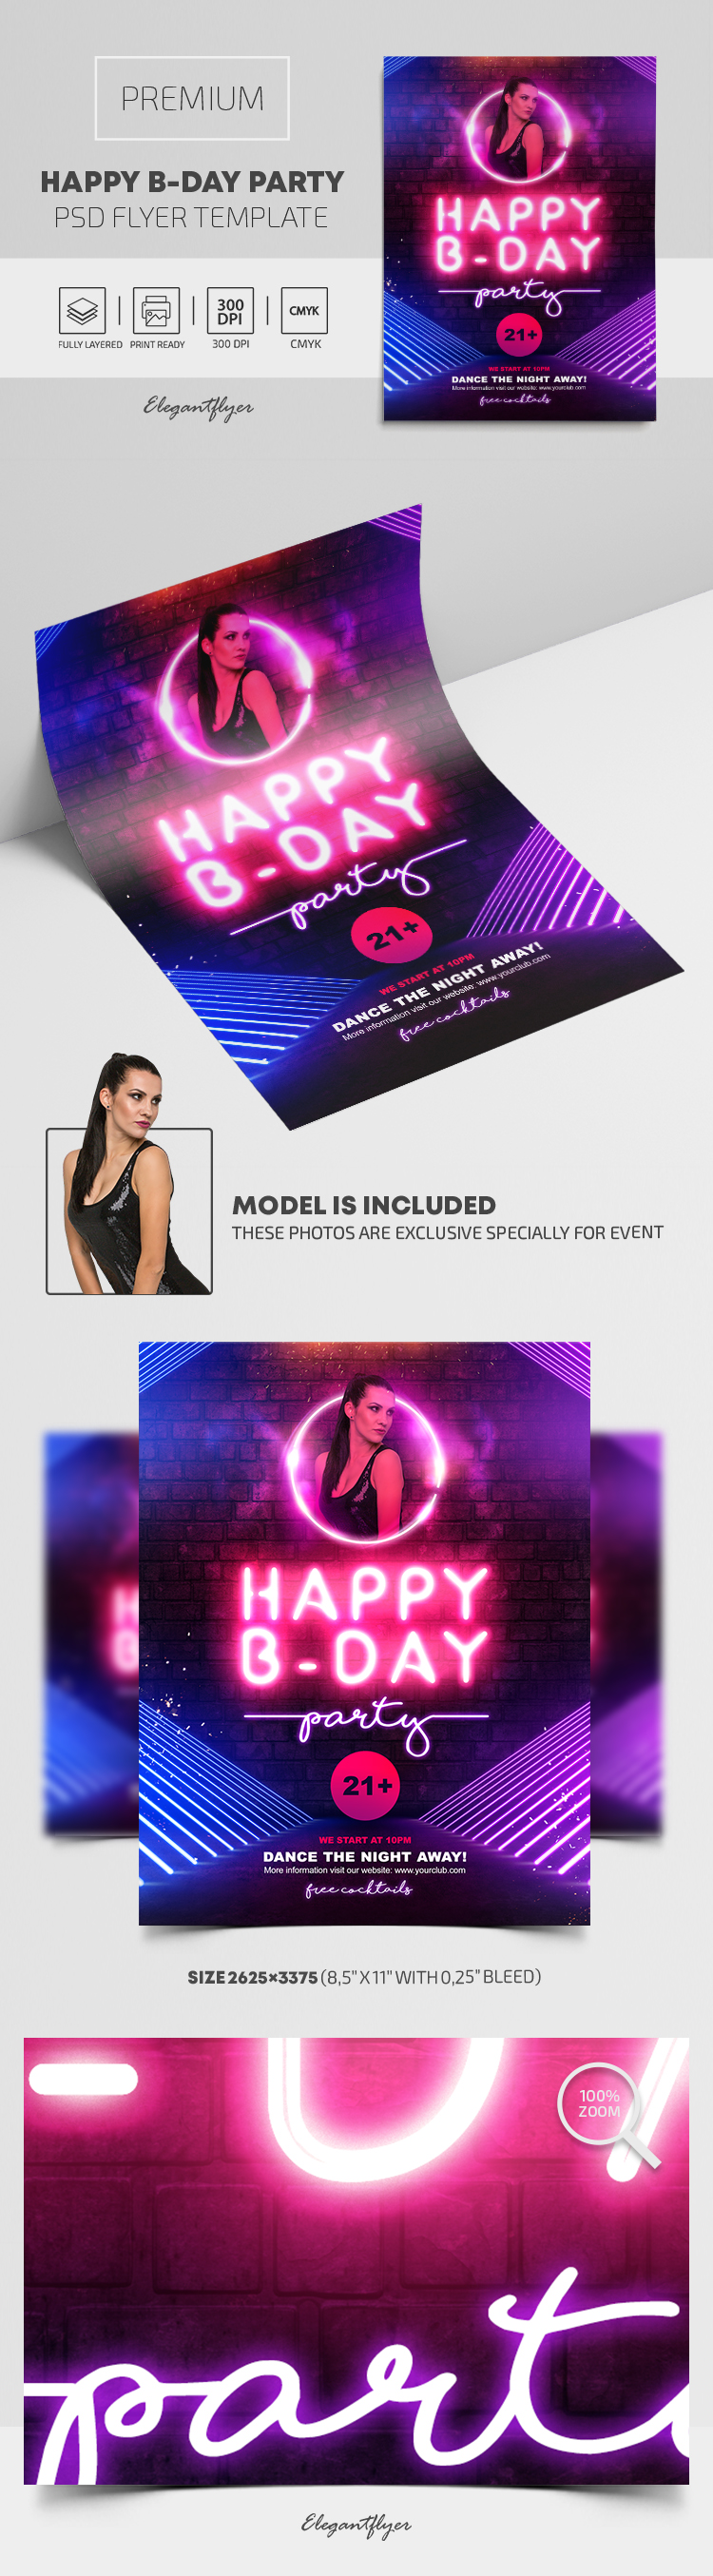 Happy B-Day Party – Premium PSD Flyer Template